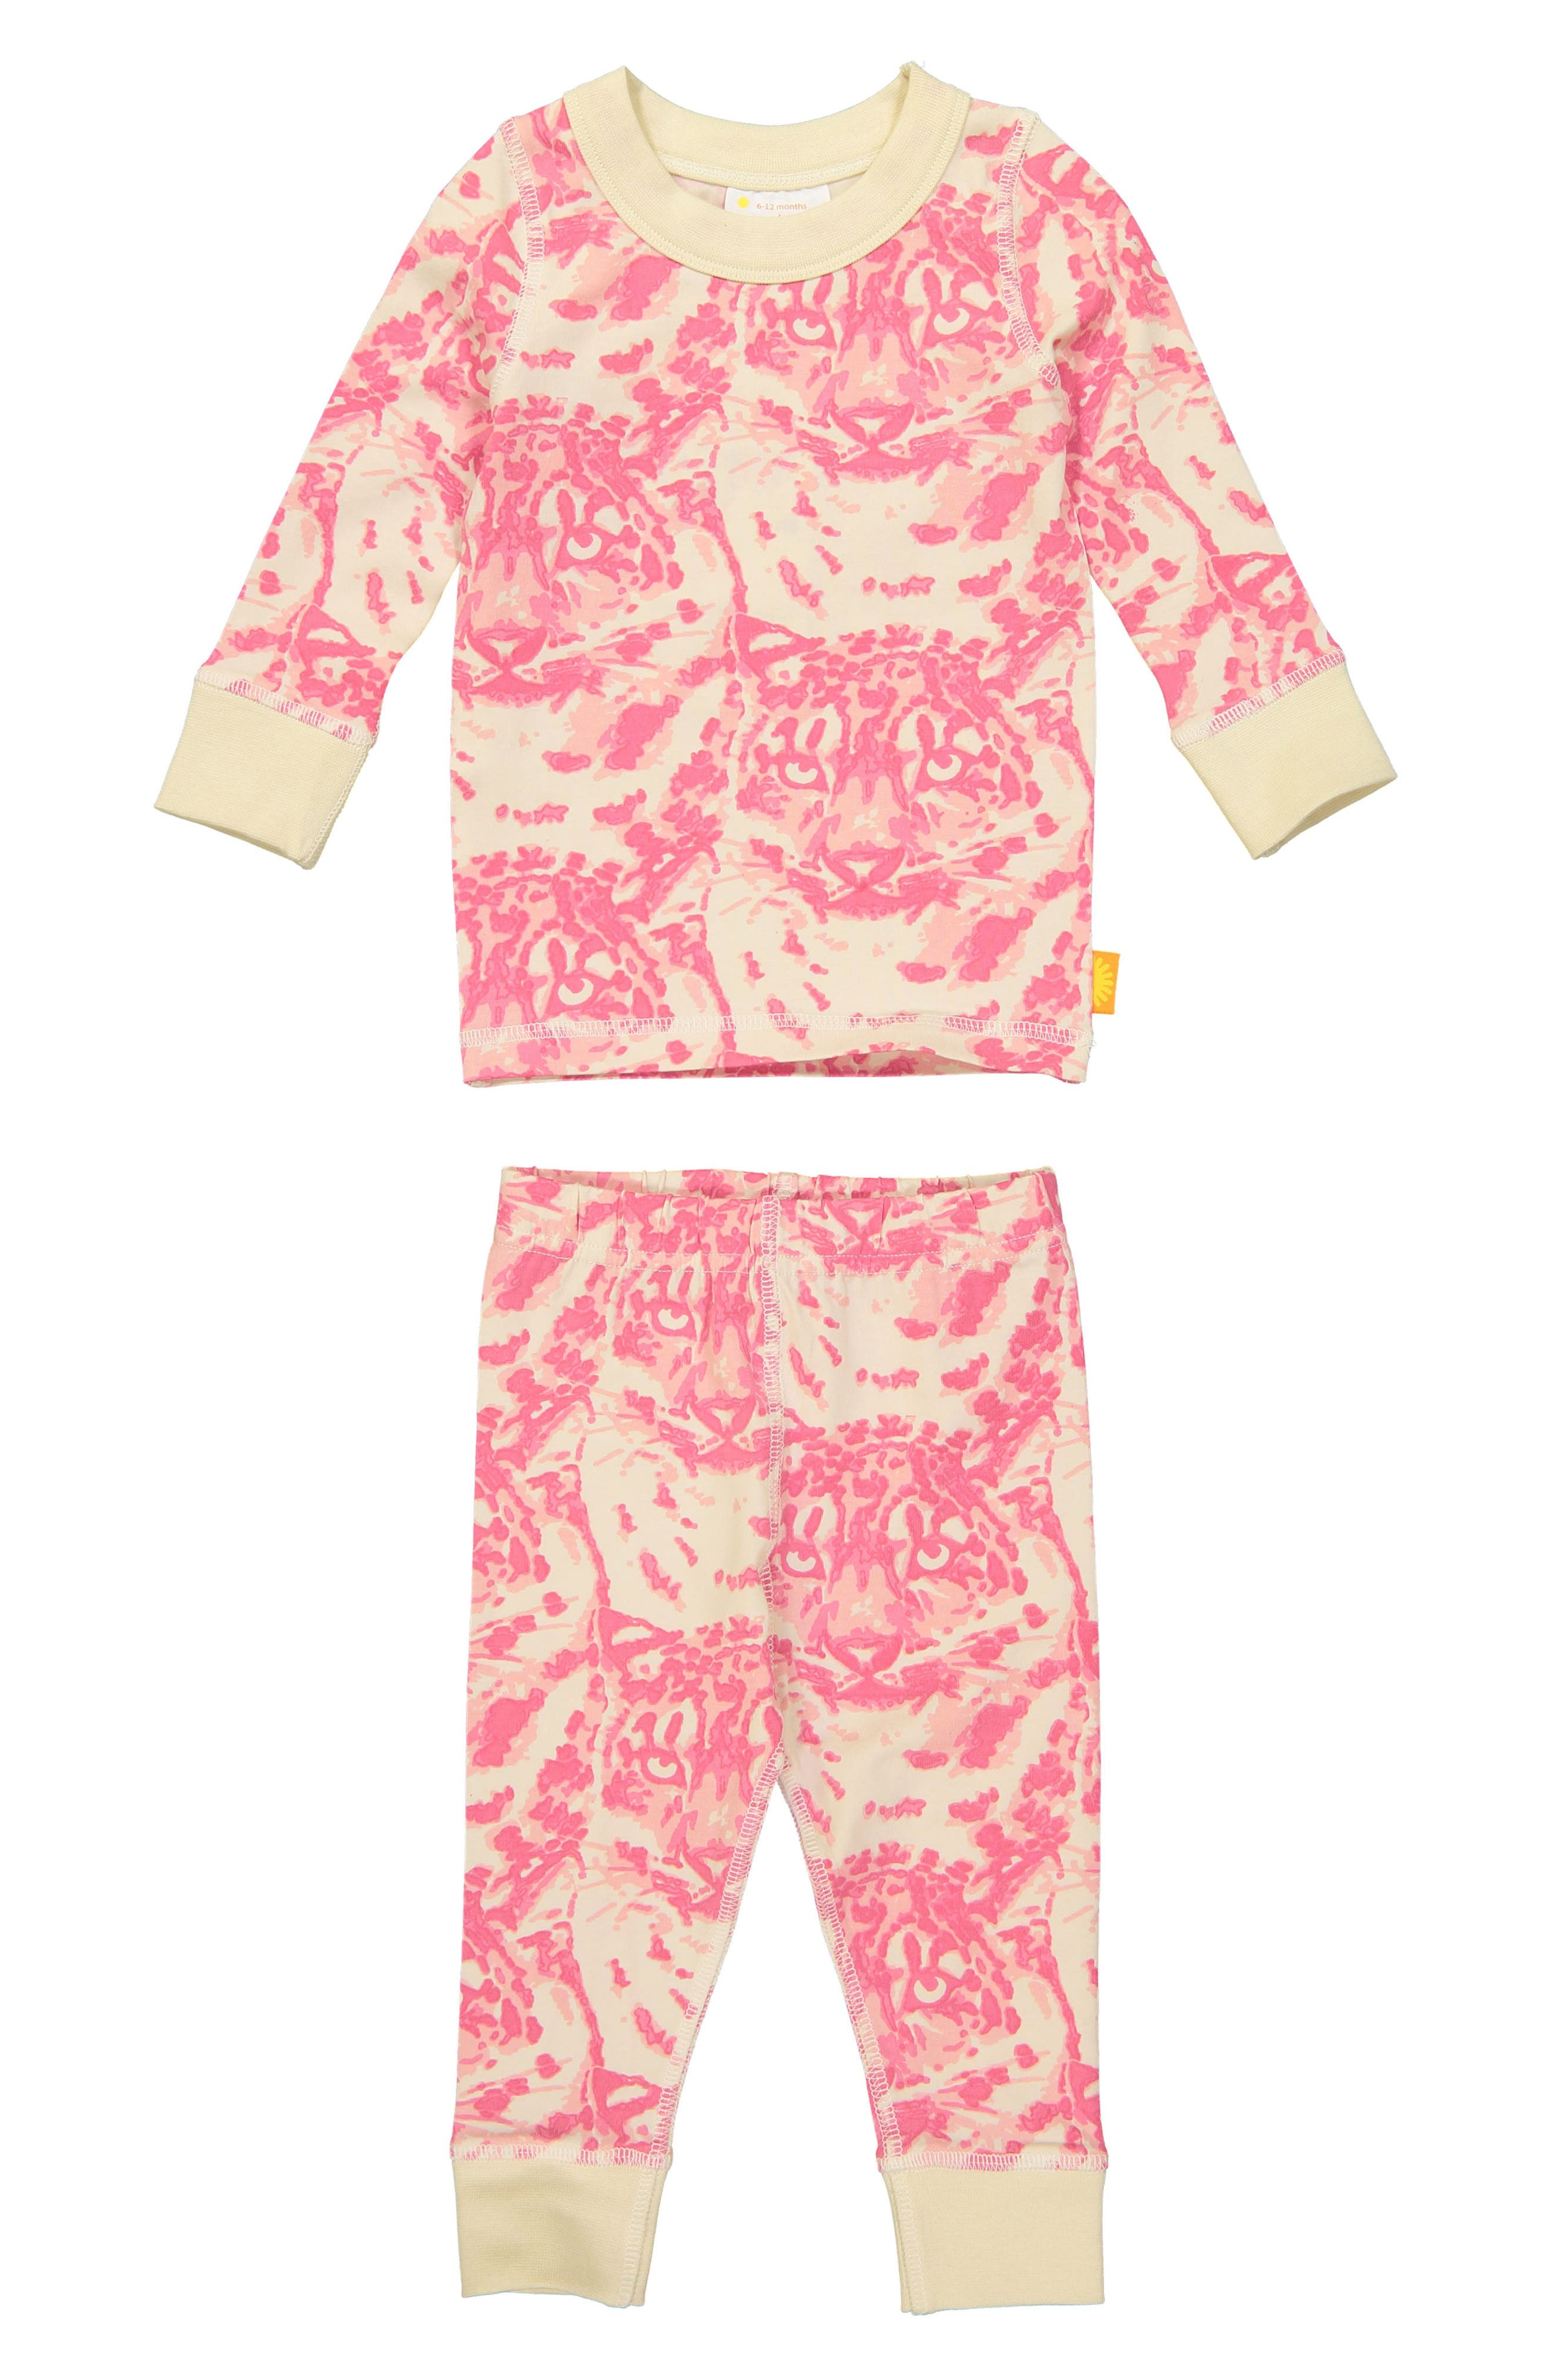 Girls Masala Baby Cat Camo Organic Cotton Fitted TwoPiece Pajamas Size 4Y  Pink